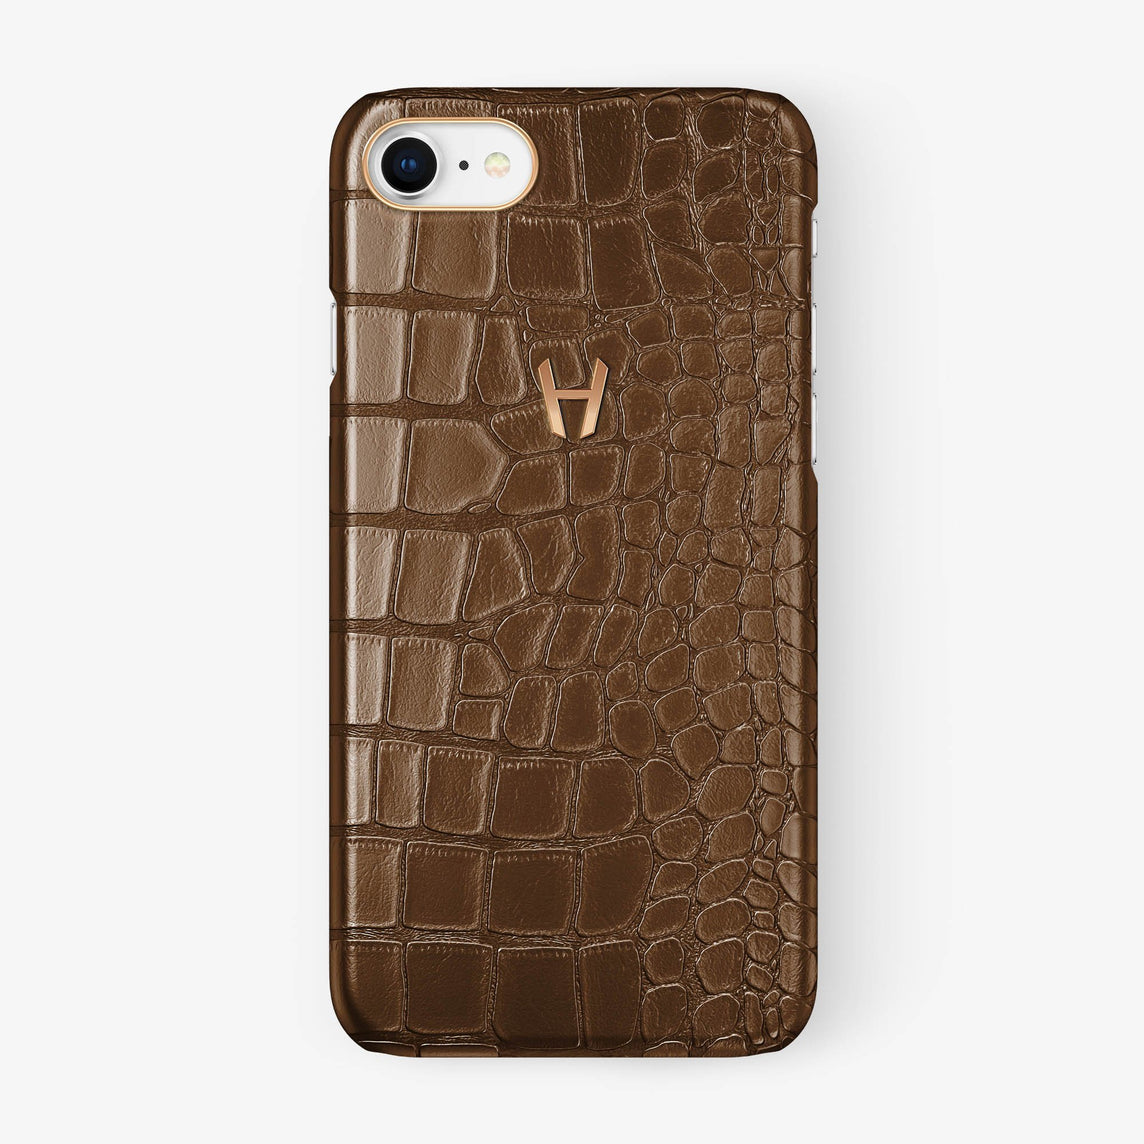 Alligator [iPhone Case] [model:iphone-7-8-case] [colour:brown] [finishing:rose-gold] - Hadoro